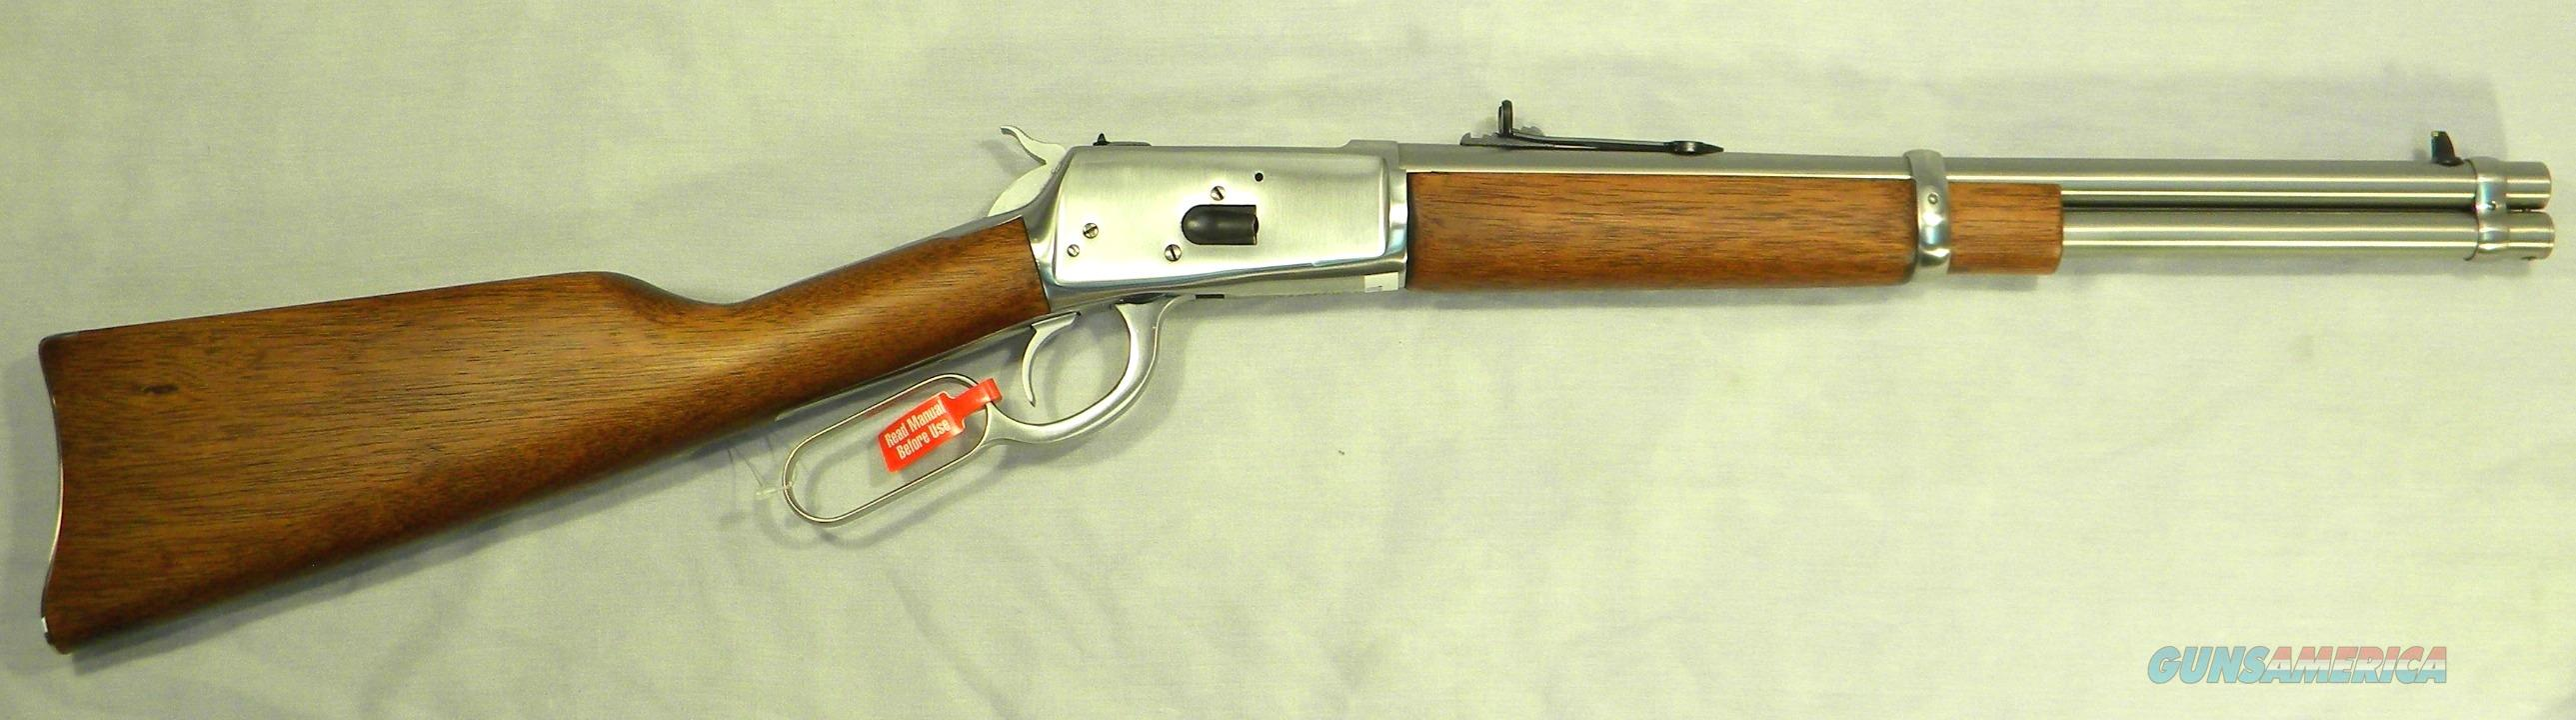 "Rossi R92, .45 Colt Lever-Action Rifle, 16"" Stainless, New In Box  Guns > Rifles > Rossi Rifles > Cowboy"